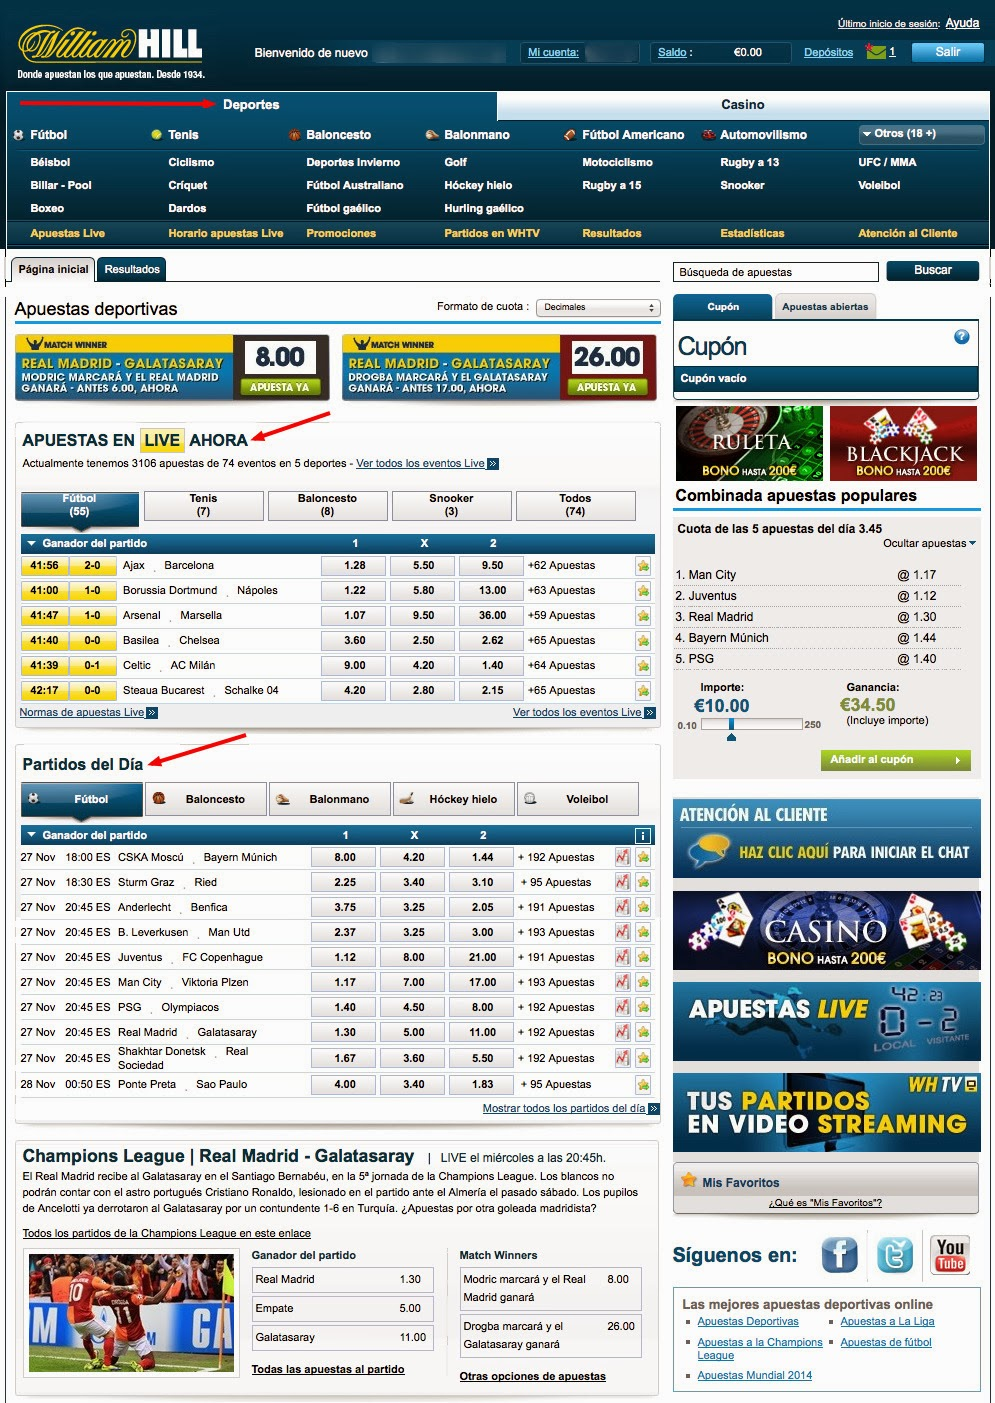 Online 32Red deportes williamhill es-524277